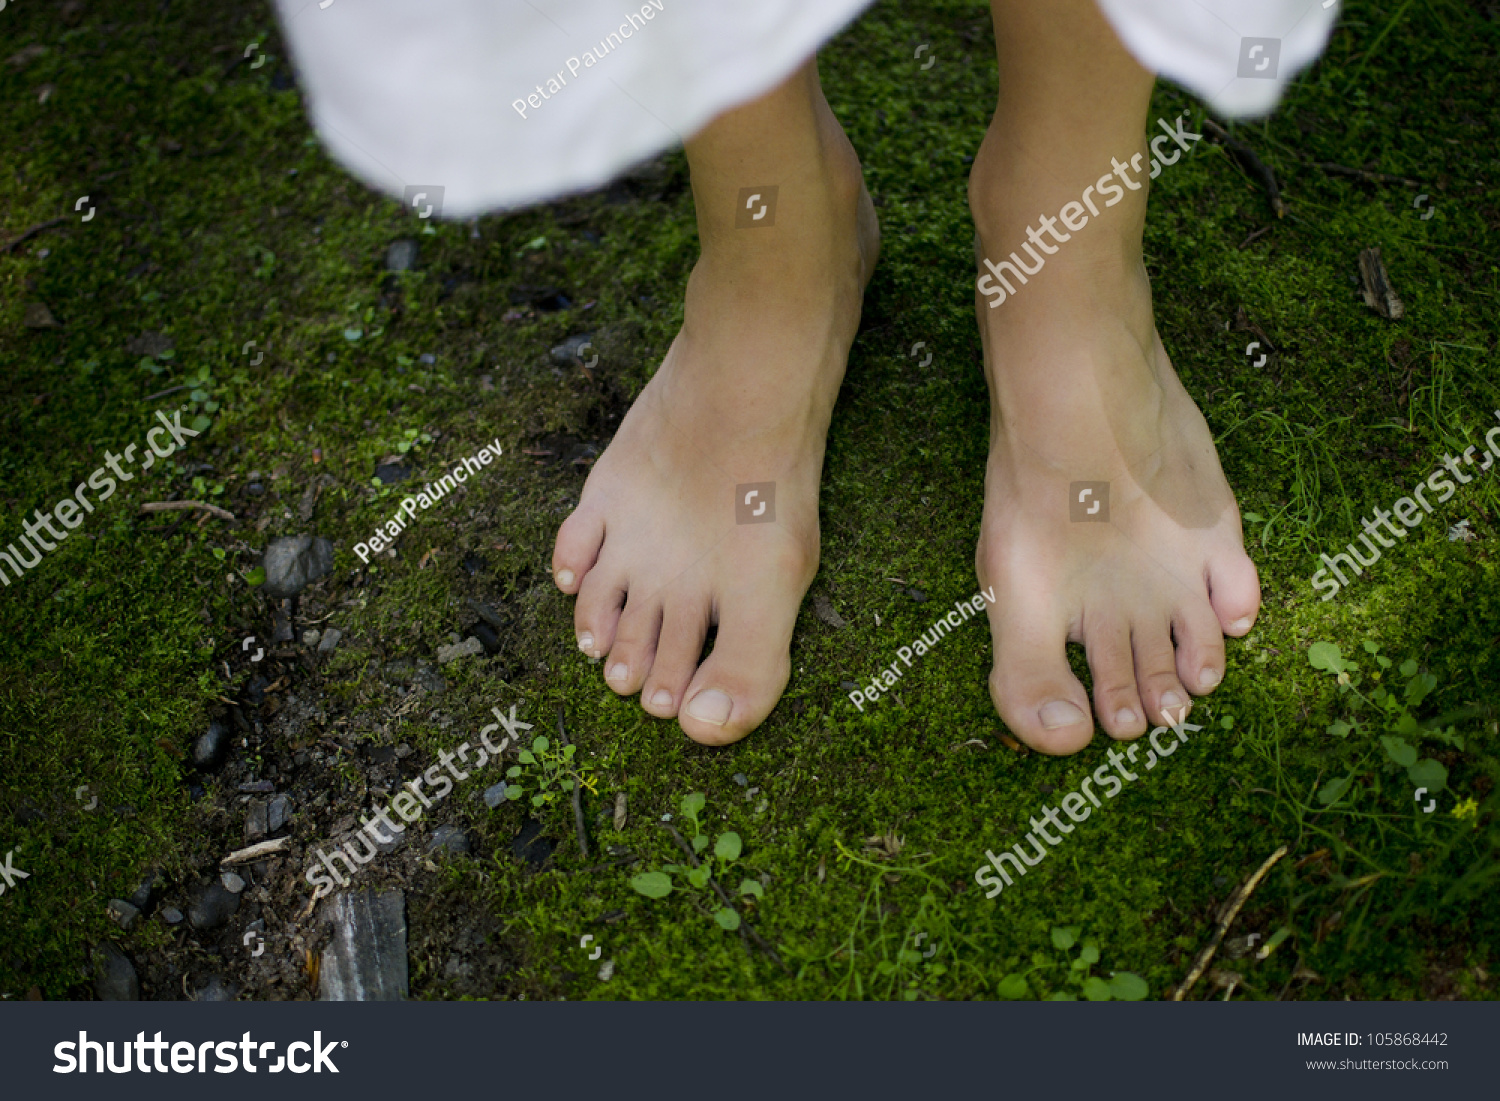 A Young Girl'S Bare Feet Feeling The Softness Of The Green Moss Connecting With The Earth Stock Photo 105868442 : Shutterstock